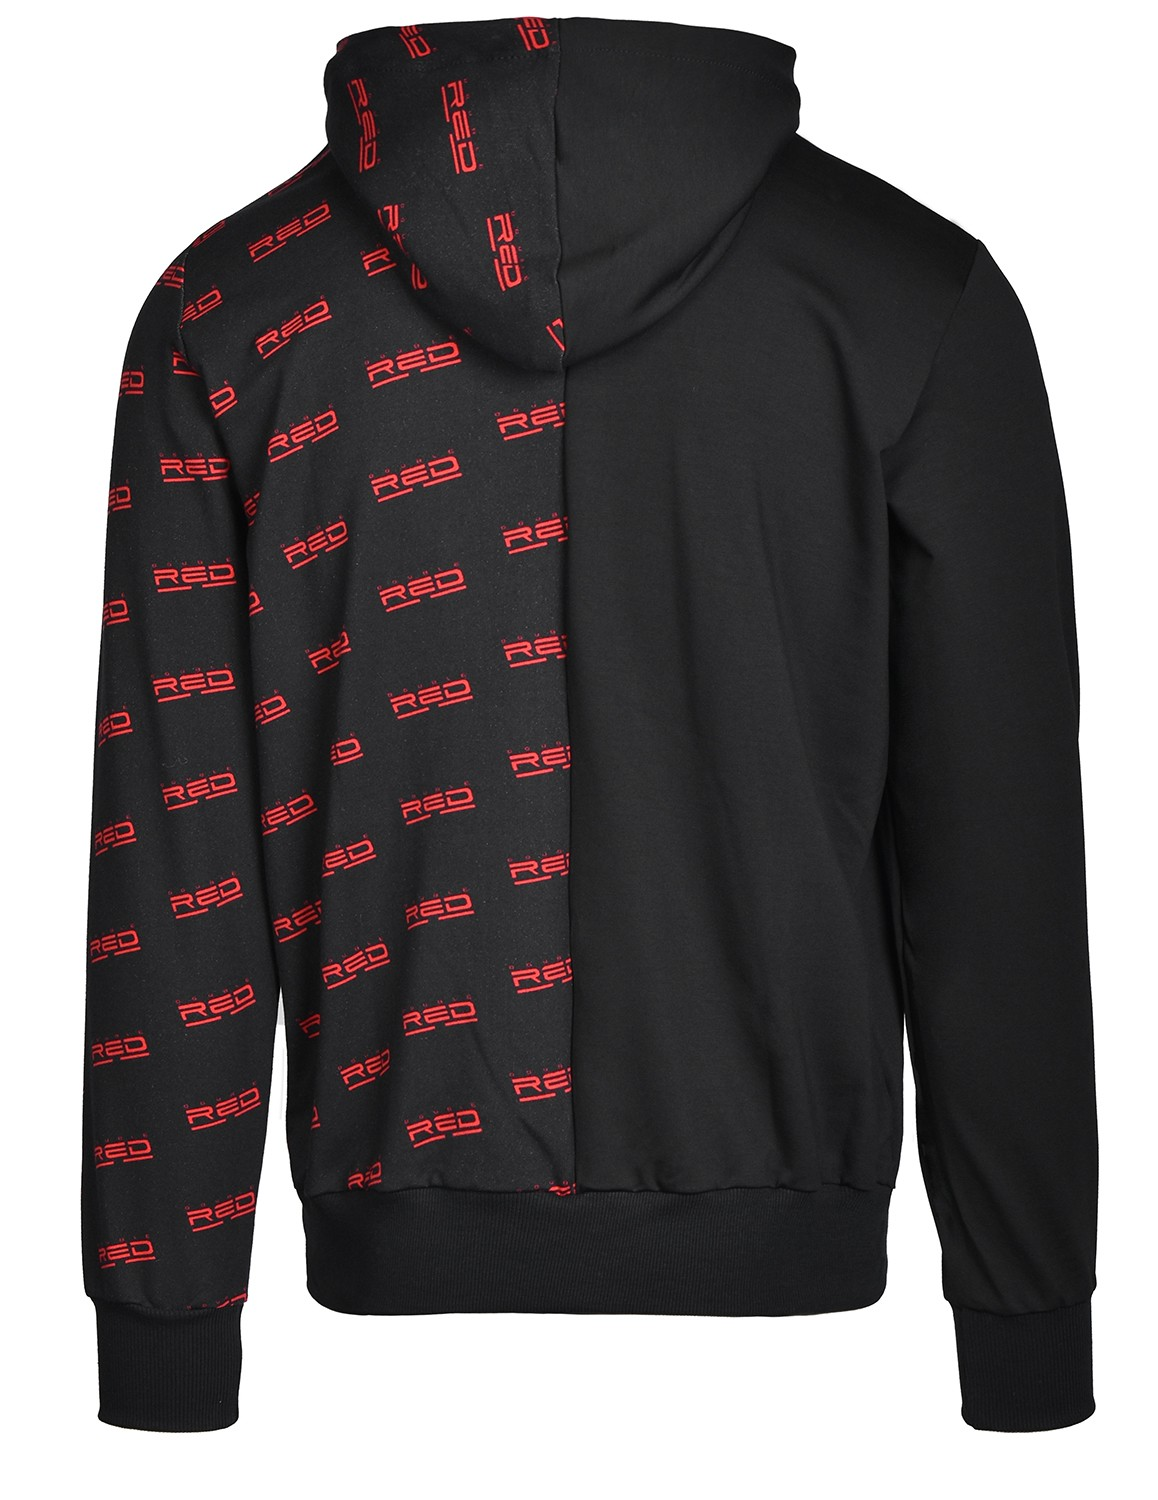 Hoodie DOUBLE FACE Black